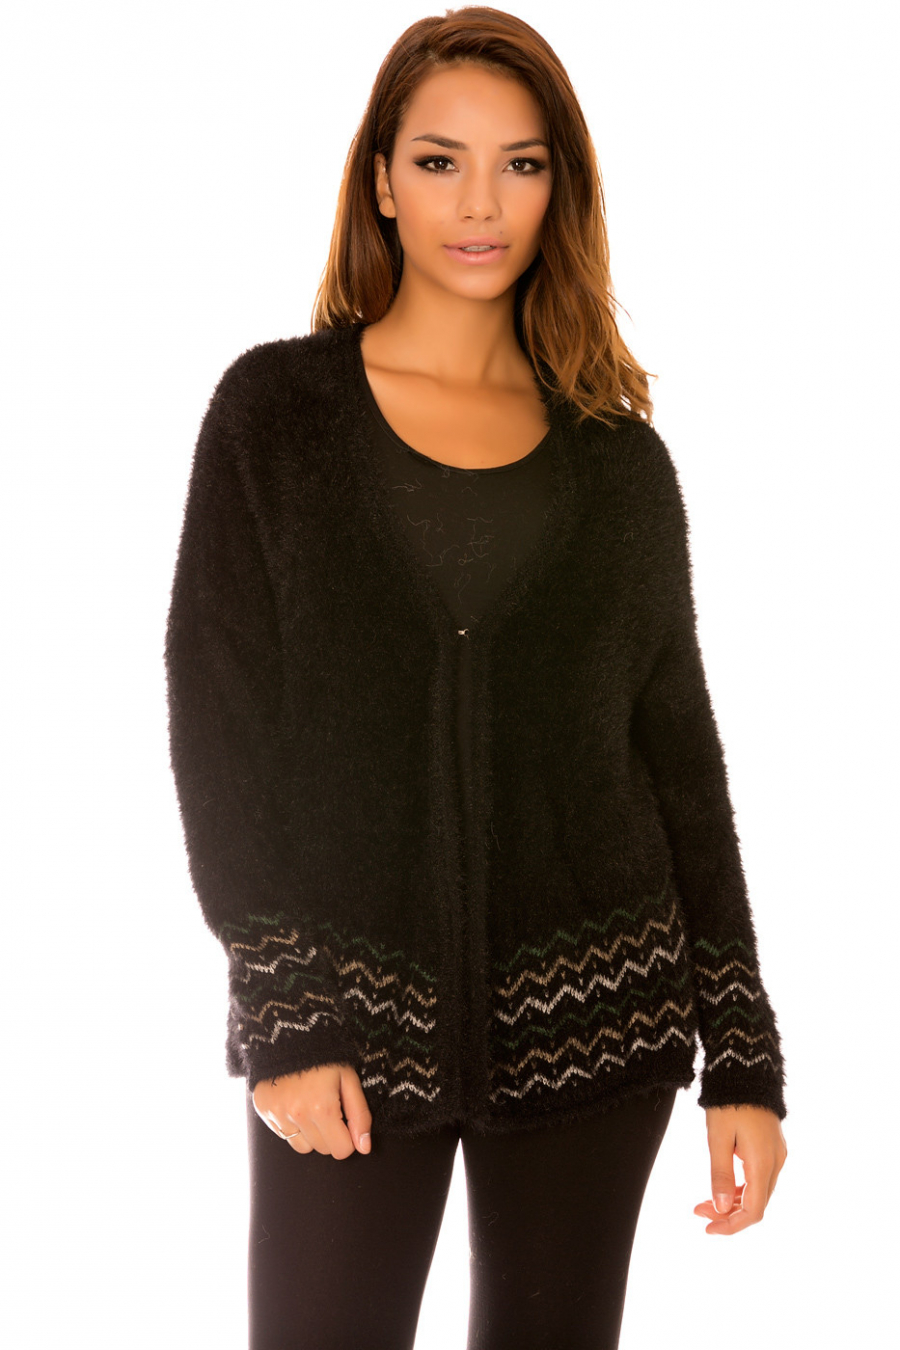 Fluffy black vest with hooks and patterns on the bottom. F9962